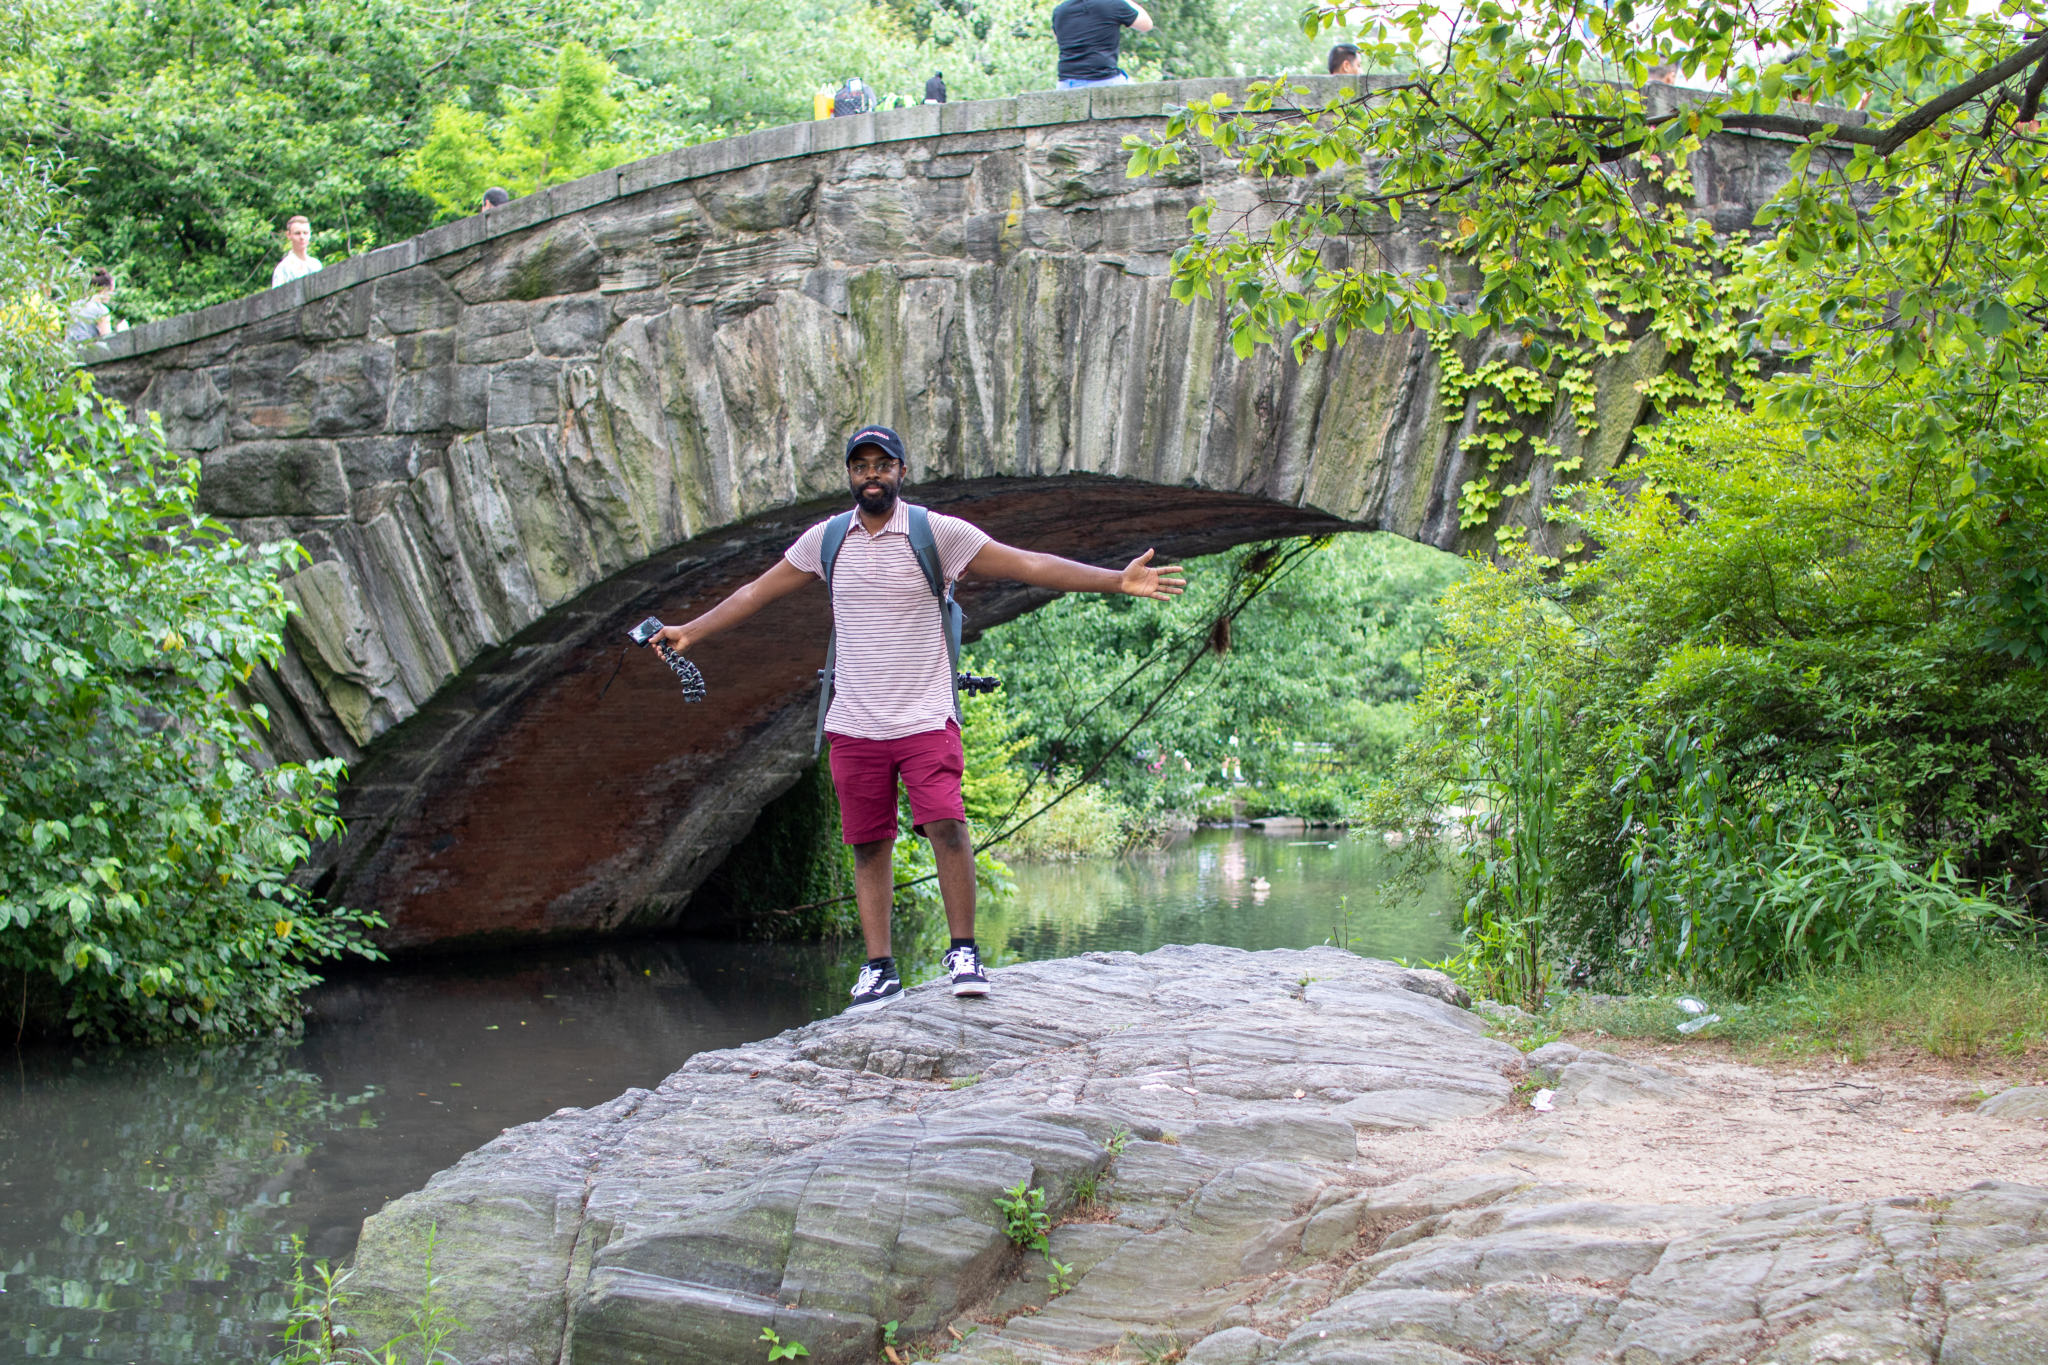 Chris standing on top of a rock in from of gapstow bridge in central park NY